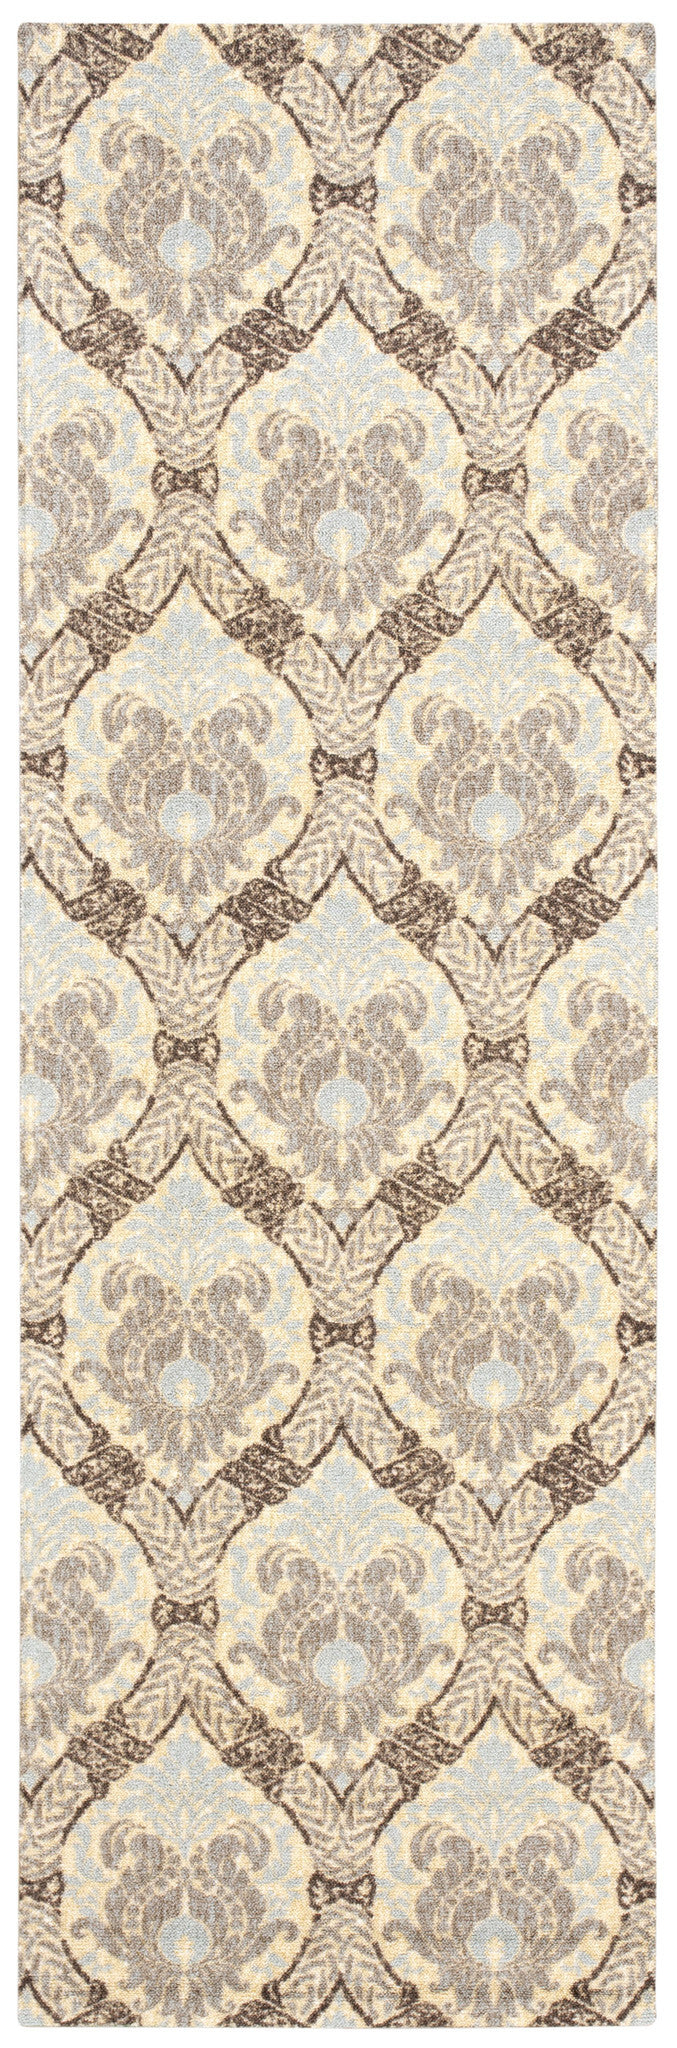 Waverly Treasures Dress Up Damask Birch Area Rug By Nourison WTR03 BIRCH